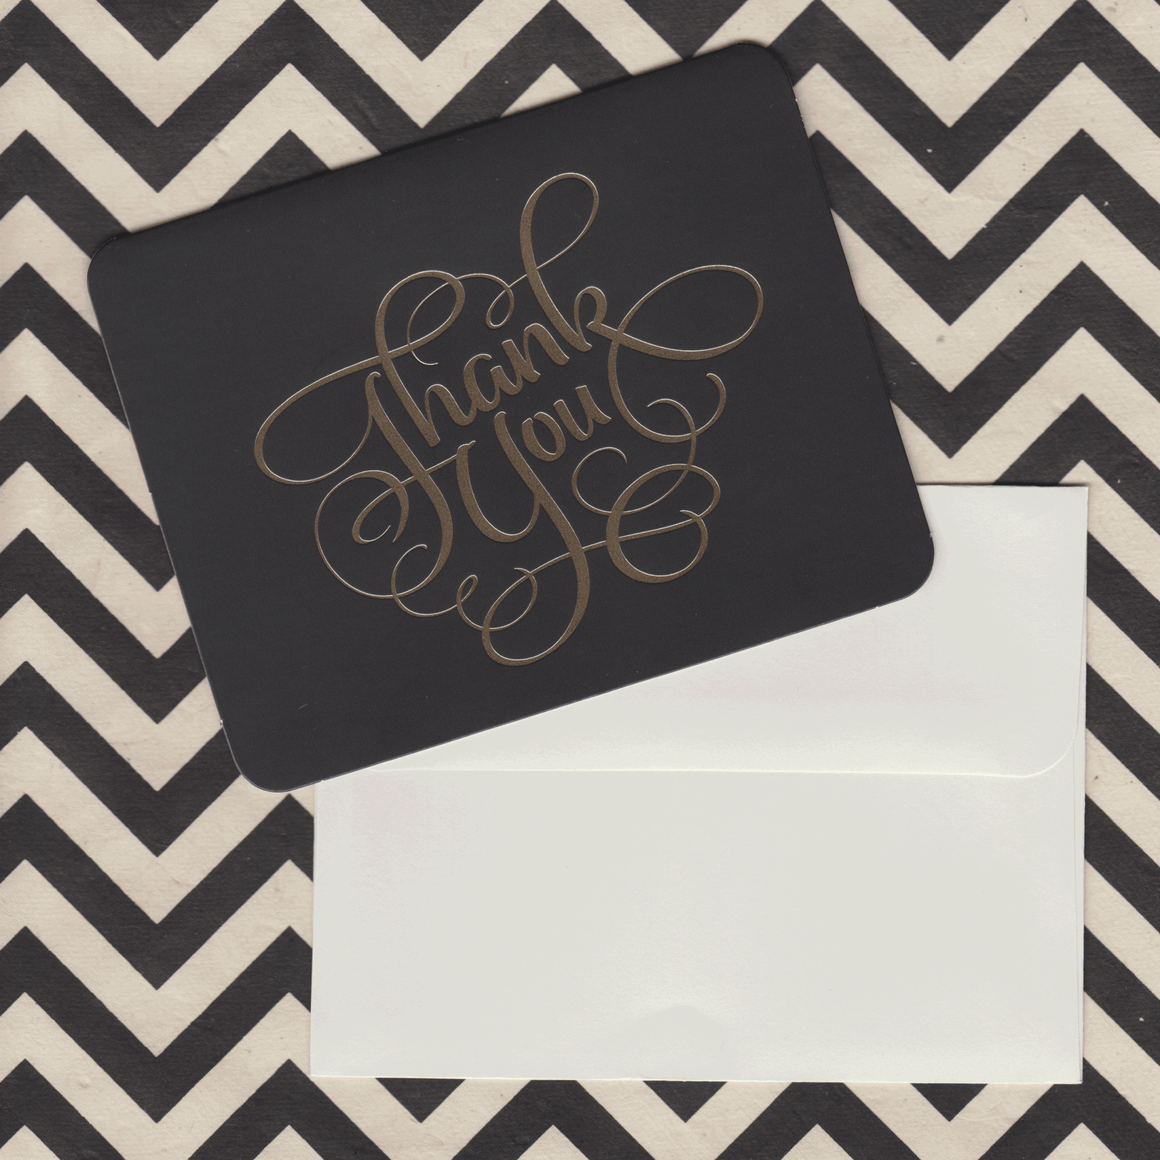 Thank You Cards Black with Gold Foil